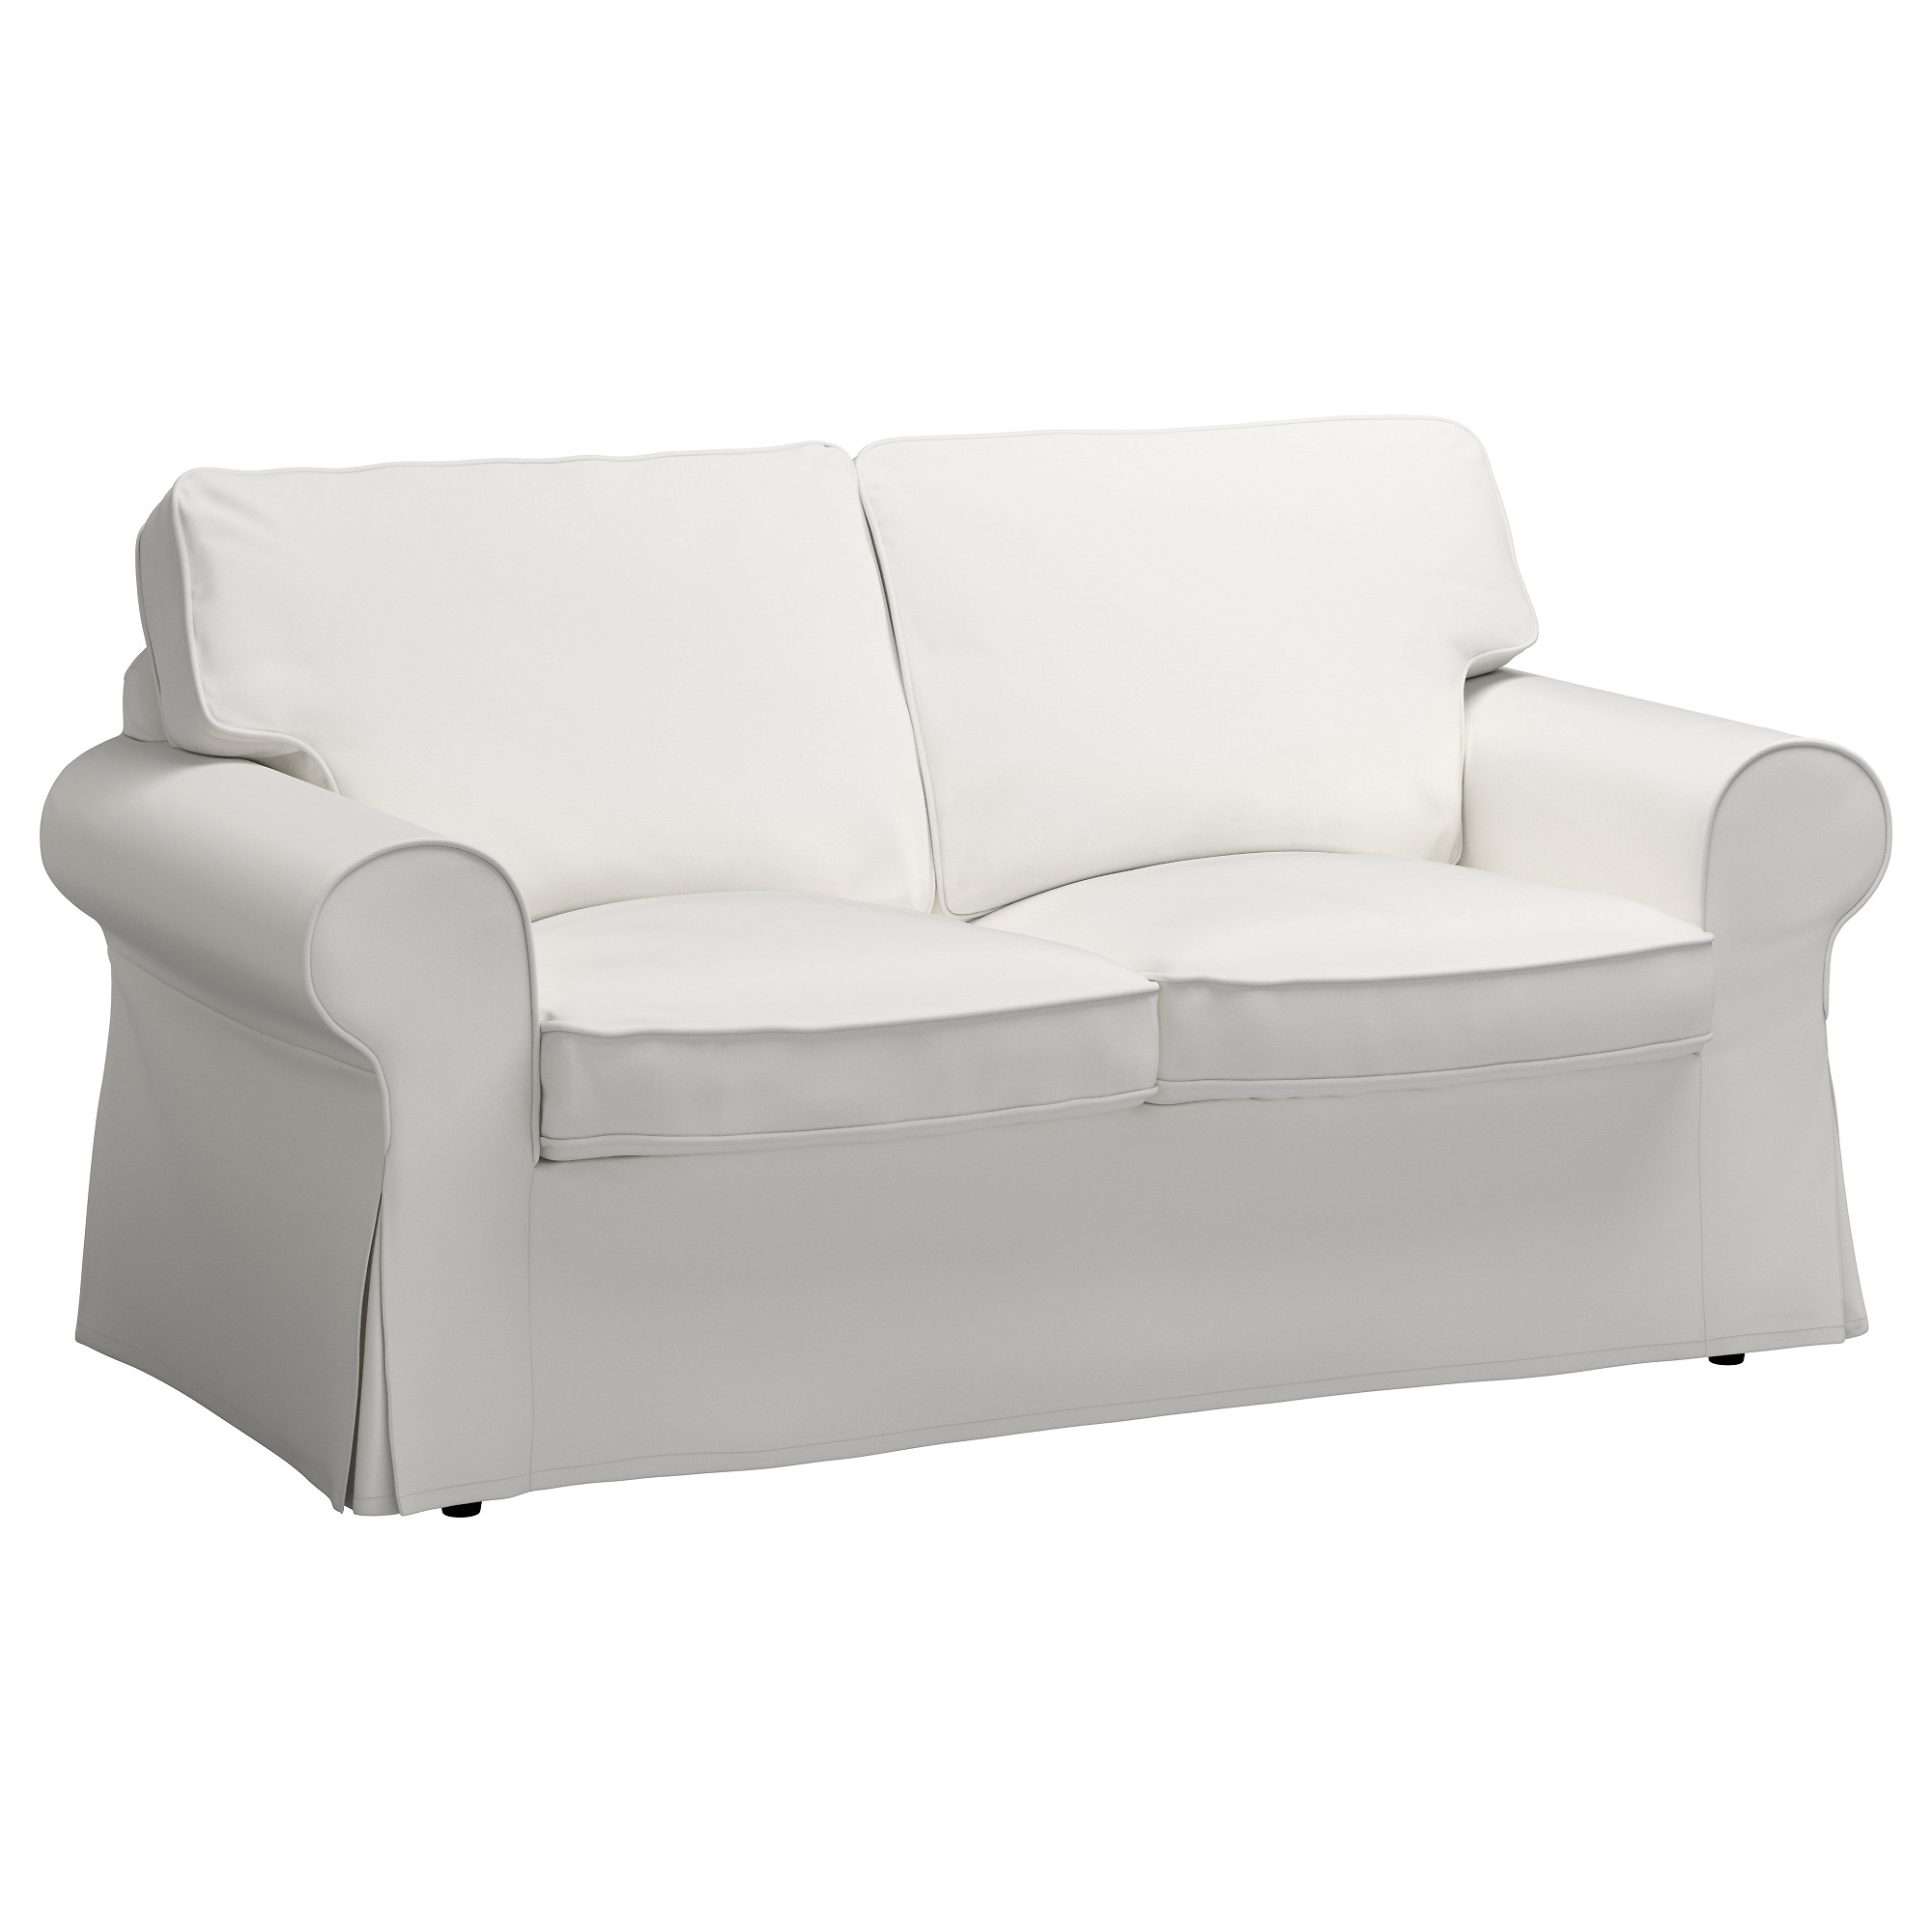 Most Recently Released Ikea Small Sofas With Regard To Ektorp Loveseat – Vittaryd White – Ikea (View 15 of 20)